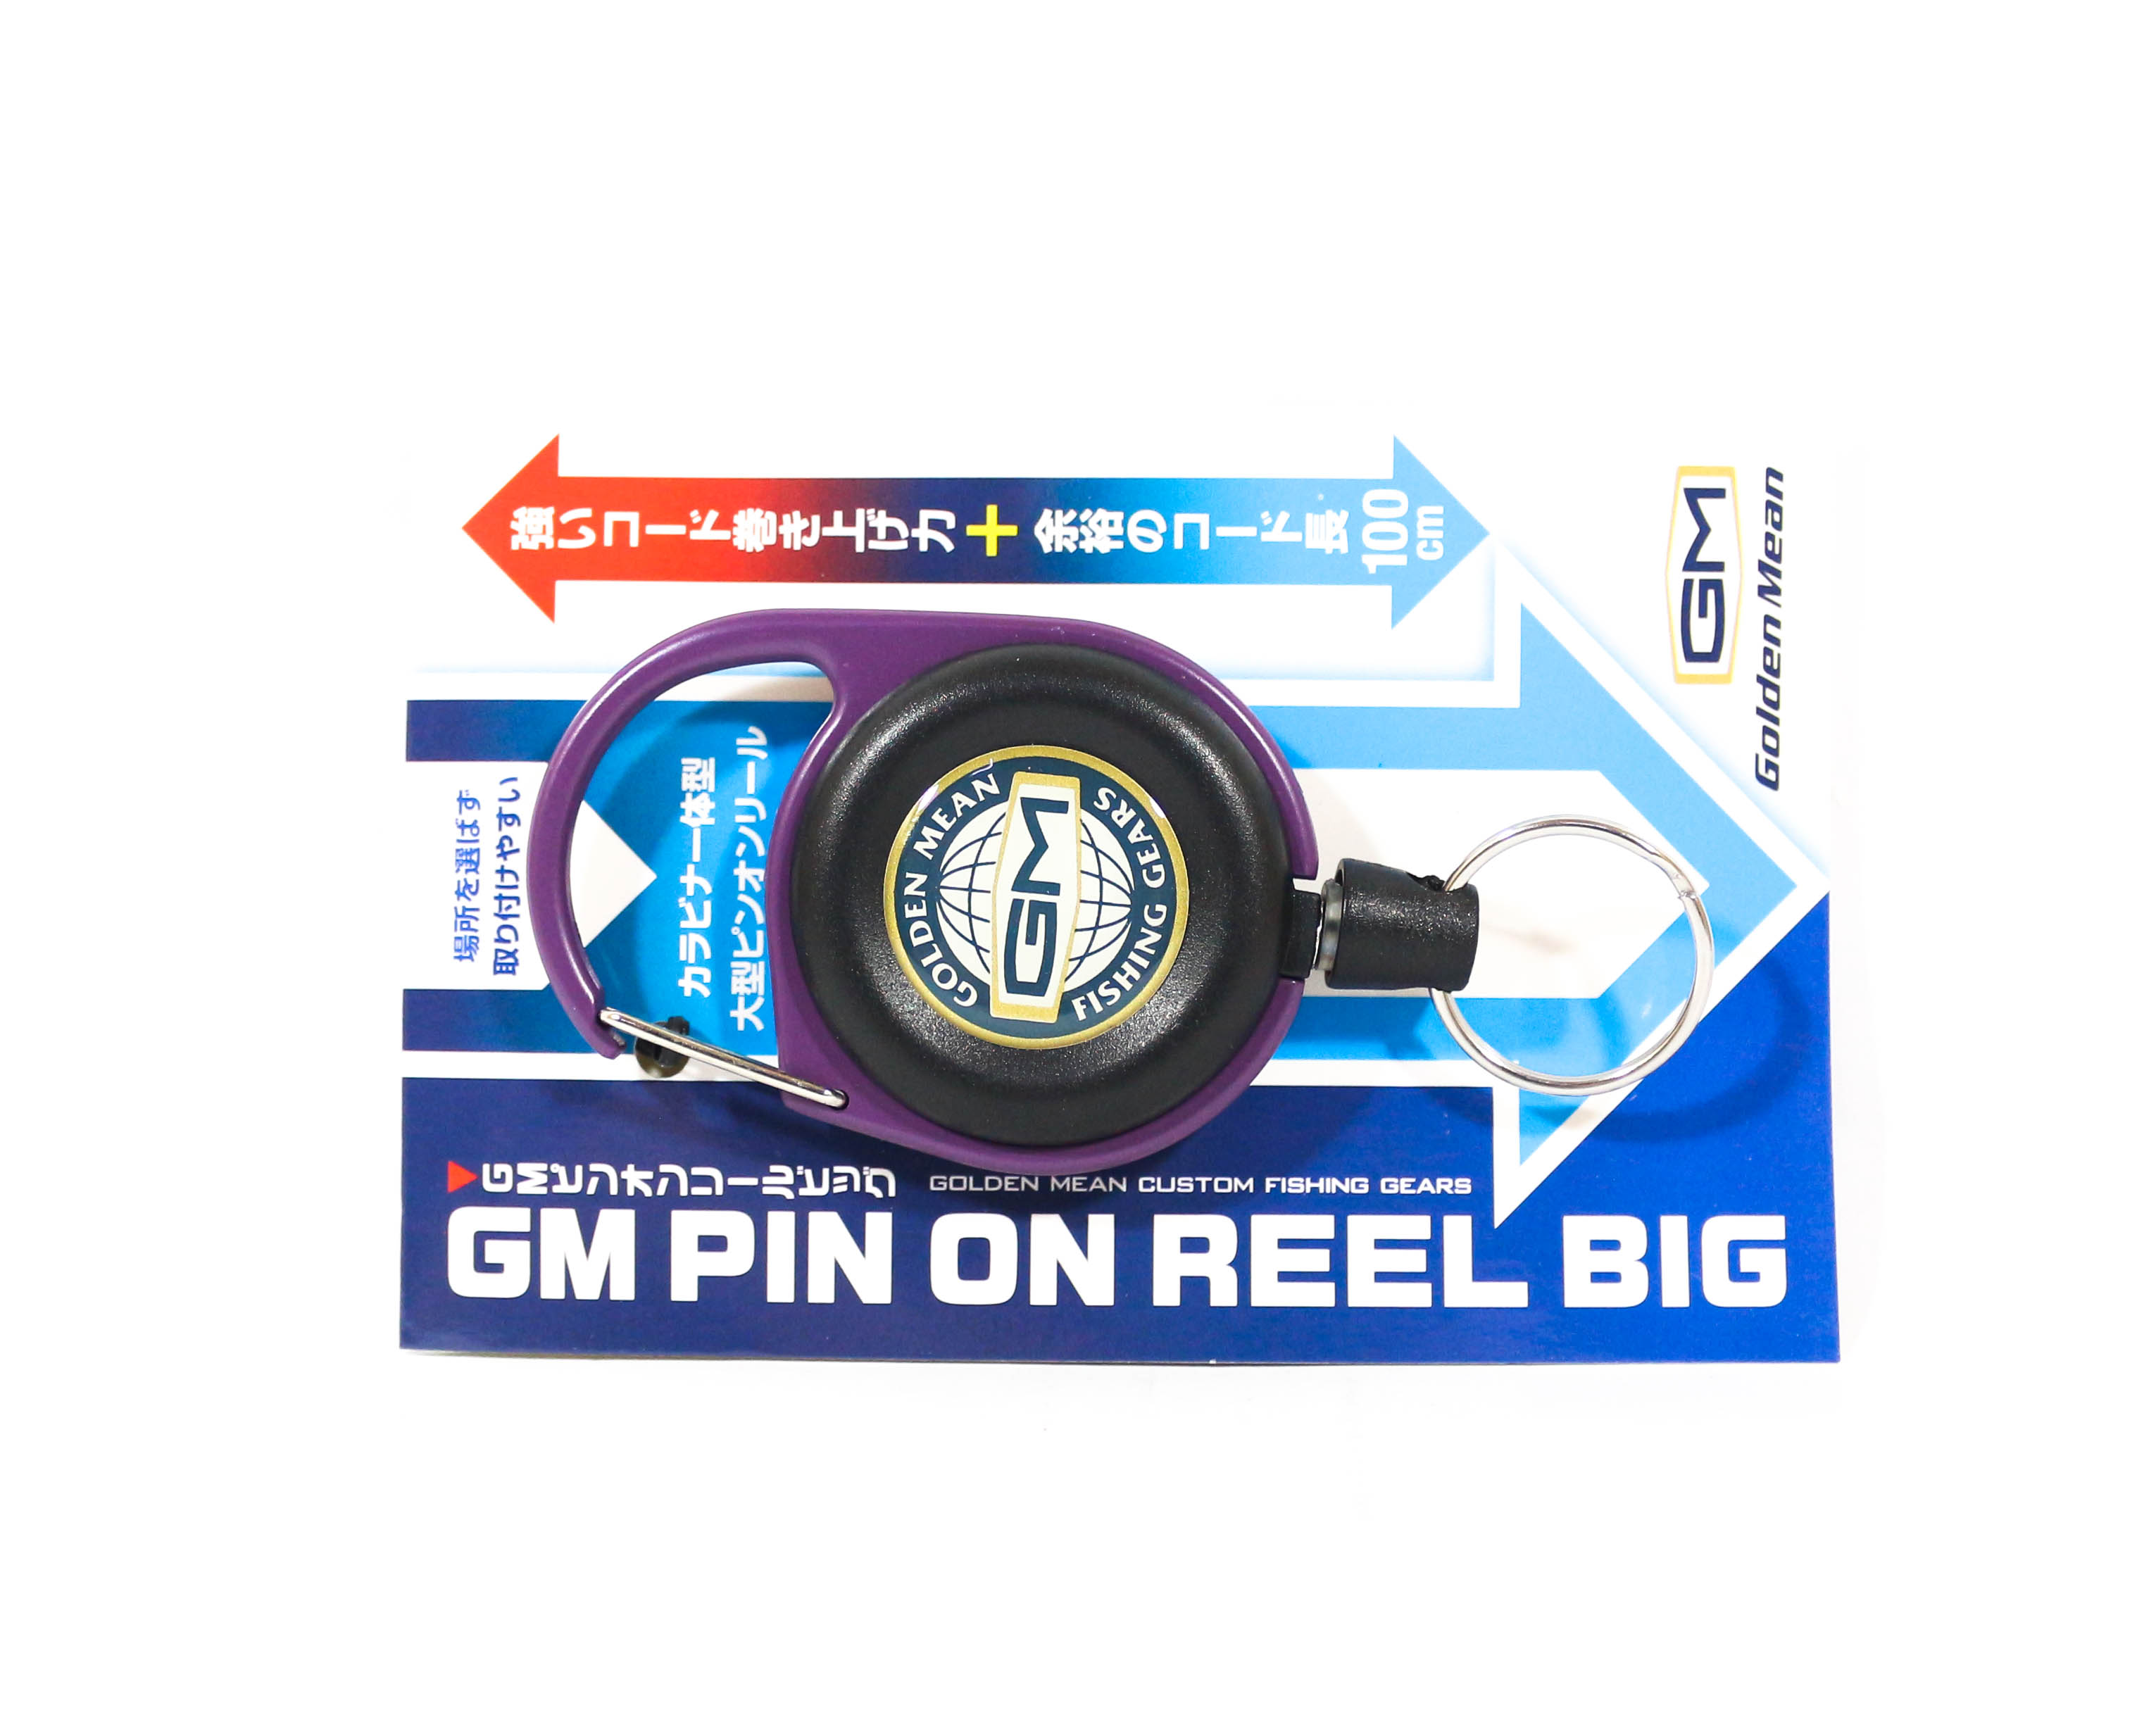 Golden Mean GM Pin on Reel Big Carabina 100cm Purple (6204)